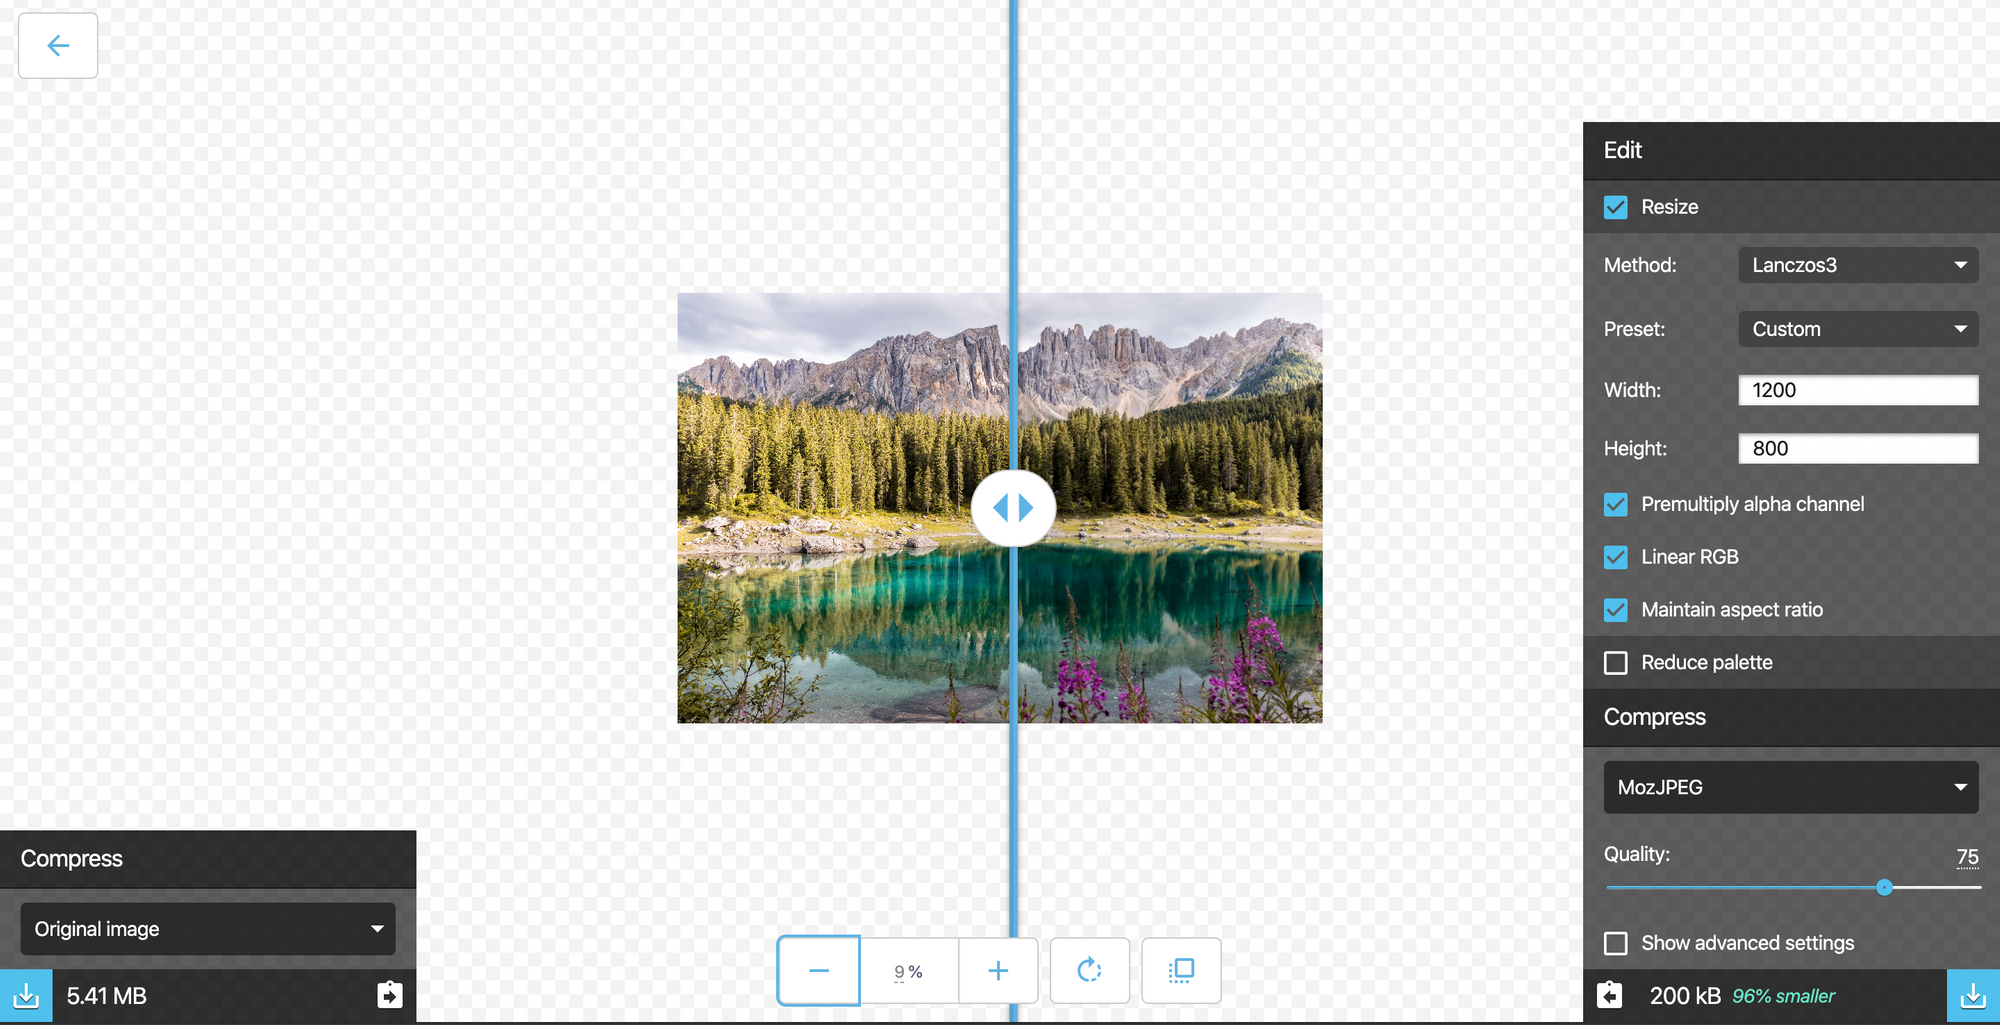 Resize and reduce the quality of a nature image